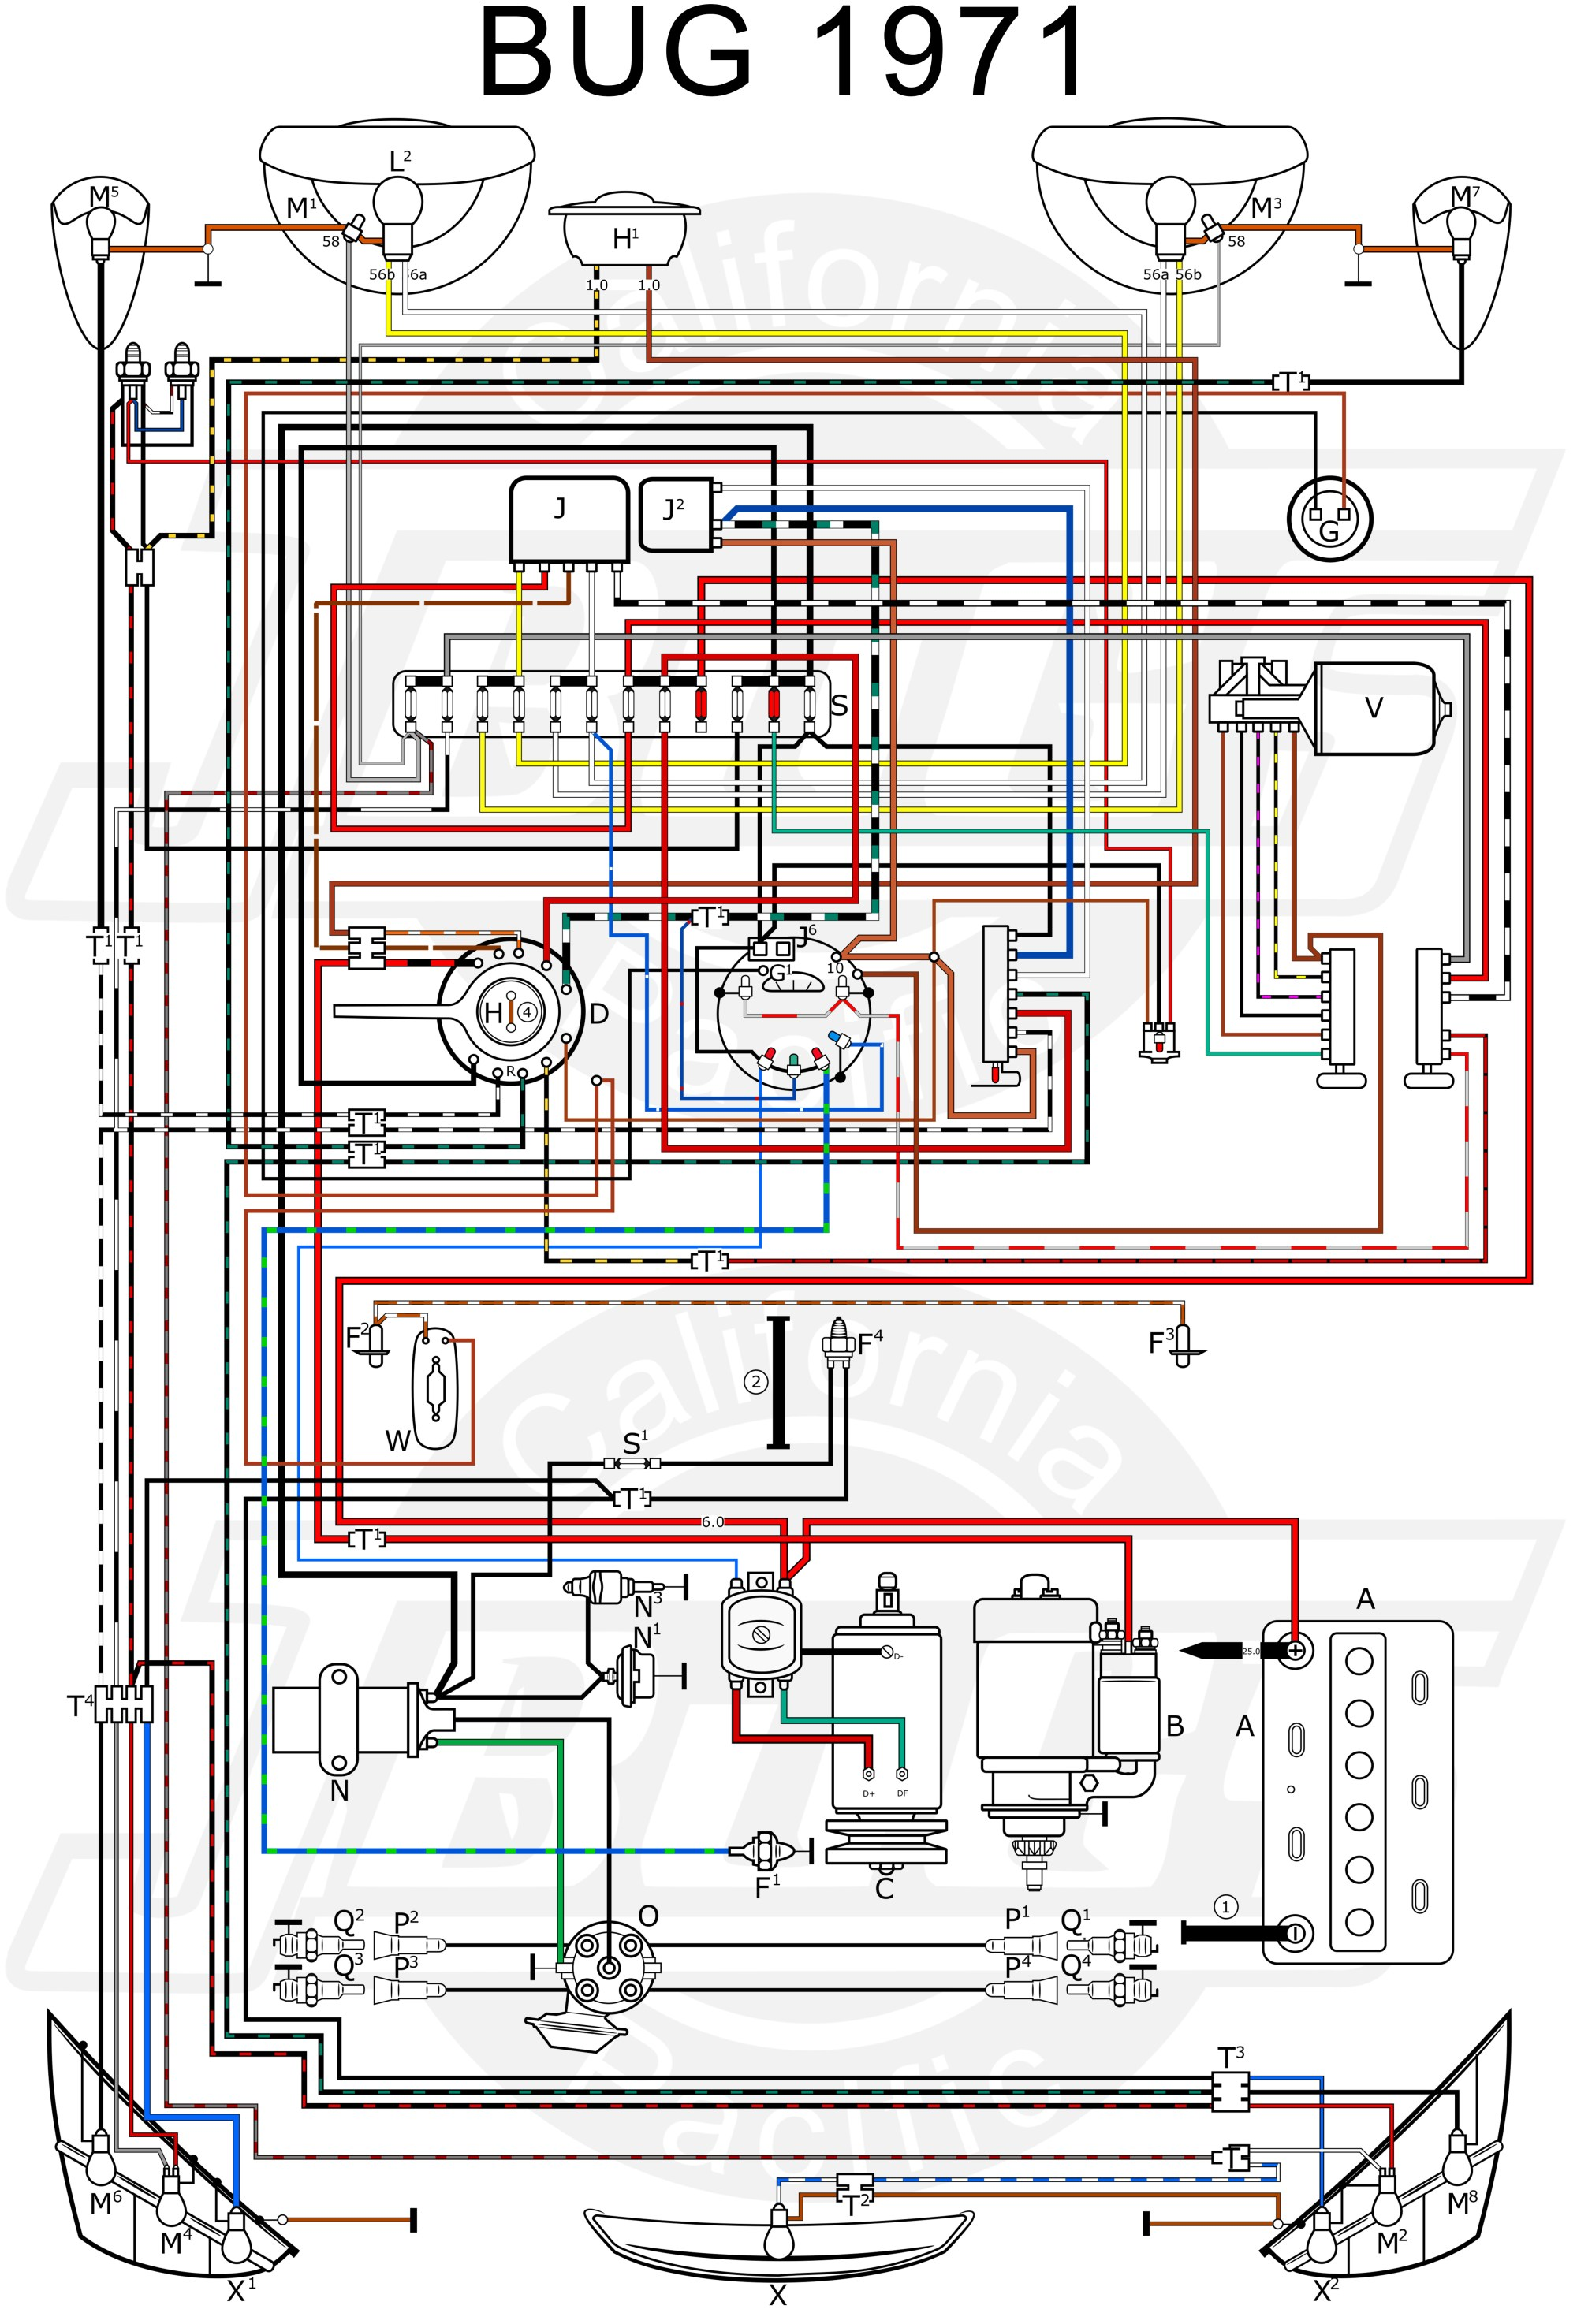 hight resolution of 1978 vw 1970 engine diagrams wiring diagram details 1978 vw engine diagram